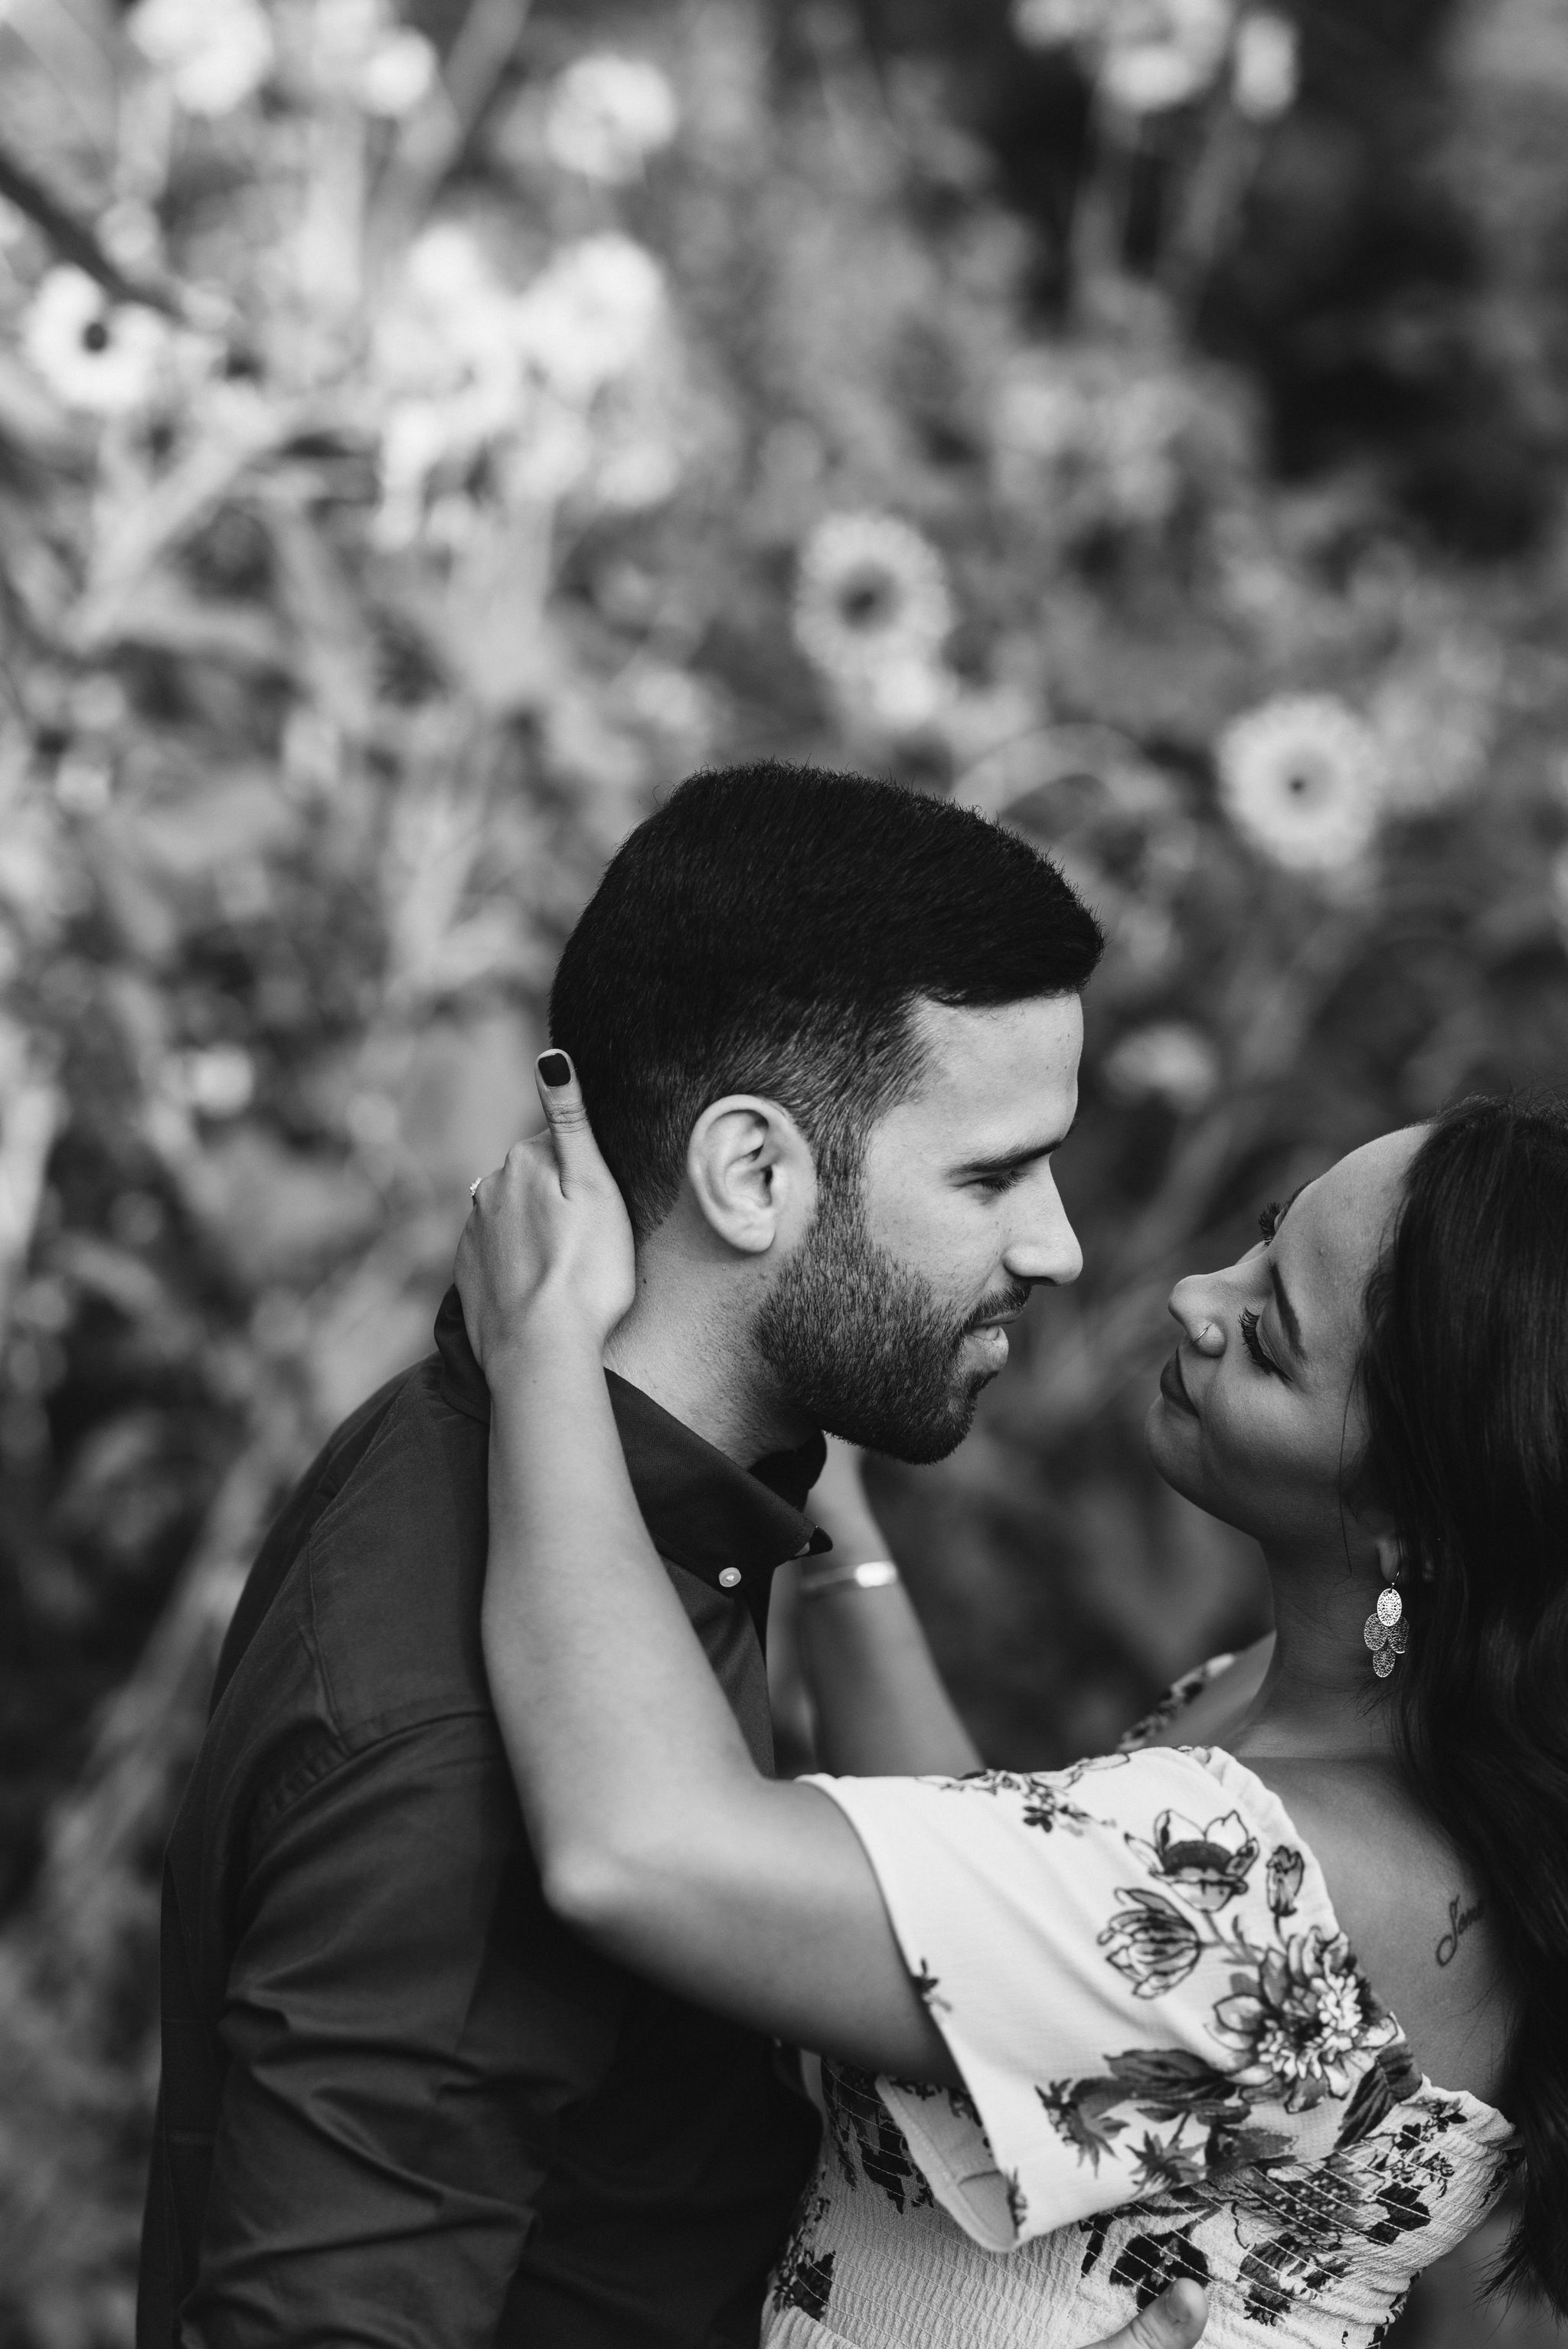 Frederick Maryland, Baltimore Wedding Photographer, Engagement, Bend in the River Farm, Outdoor, Rustic, Nature, Bride and groom Looking Into Each Others Eyes, Black and White Photo